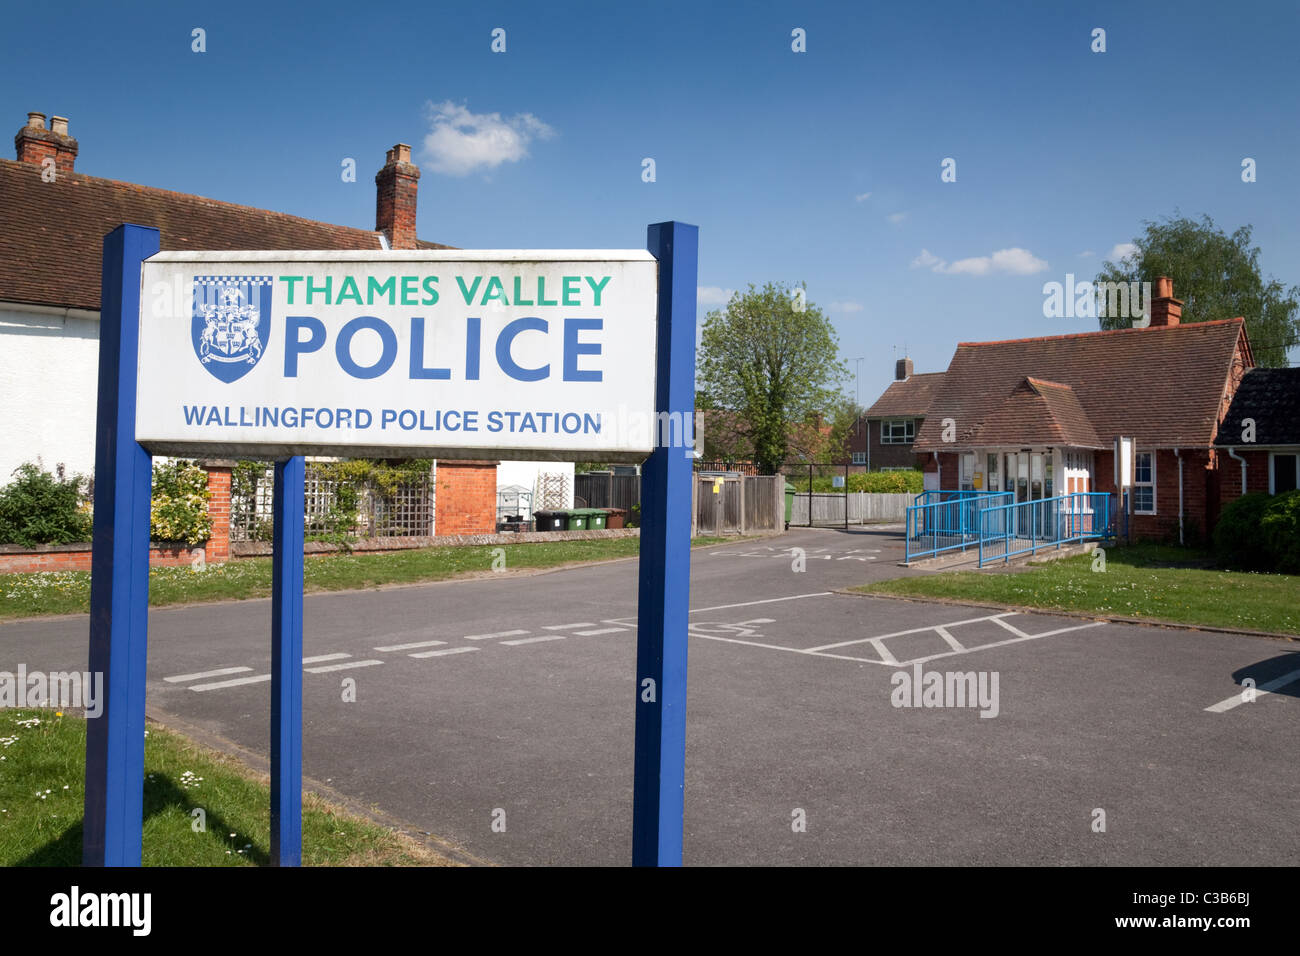 Wallingford Town police station, Wallingford, Oxfordshire UK - Stock Image